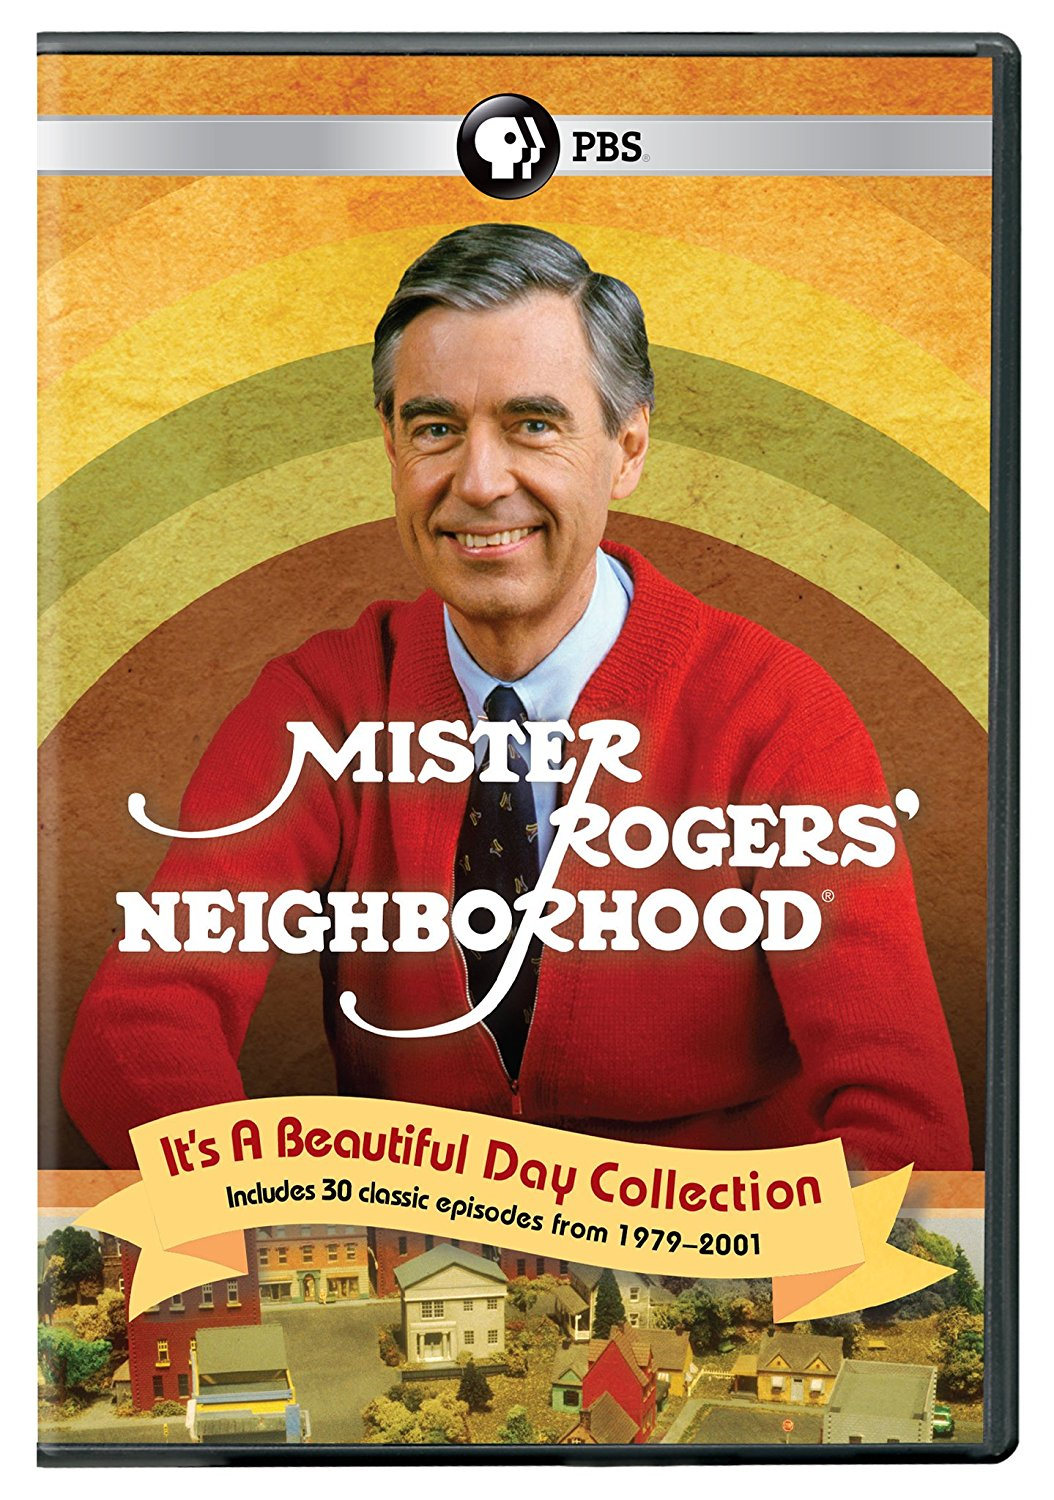 Mister Rogers' Neighborhood: It's a Beautiful Day Collection | SLJ DVD Review